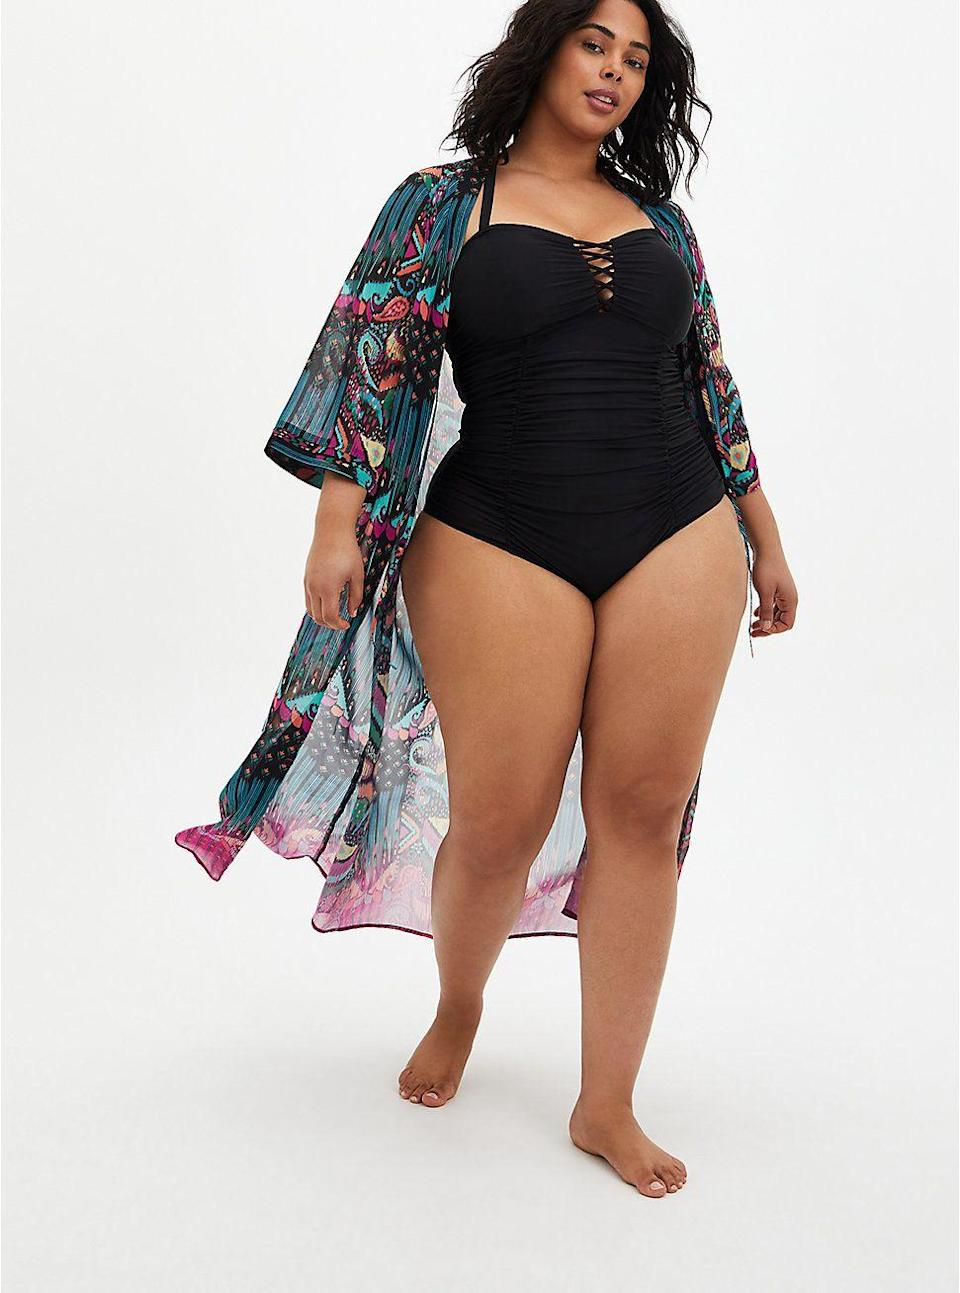 """<p><strong>Torrid</strong></p><p>torrid.com</p><p><strong>$45.15</strong></p><p><a href=""""https://go.redirectingat.com?id=74968X1596630&url=https%3A%2F%2Fwww.torrid.com%2Fproduct%2Fmulti-ikat-maxi-kimono-swim-cover-up-%2F14599137.html%3Fcgid%3DActiveSwim_Swim_CoverUps&sref=https%3A%2F%2Fwww.oprahdaily.com%2Fstyle%2Fg32771615%2Fbest-plus-size-swimsuit-cover-up%2F"""" rel=""""nofollow noopener"""" target=""""_blank"""" data-ylk=""""slk:SHOP NOW"""" class=""""link rapid-noclick-resp"""">SHOP NOW</a></p><p>Billowy sleeves, airy fabric, and a global-inspired print make this a winner. Tip: You can style this kimono over a tank and jeans for an effortless going-out look.</p>"""